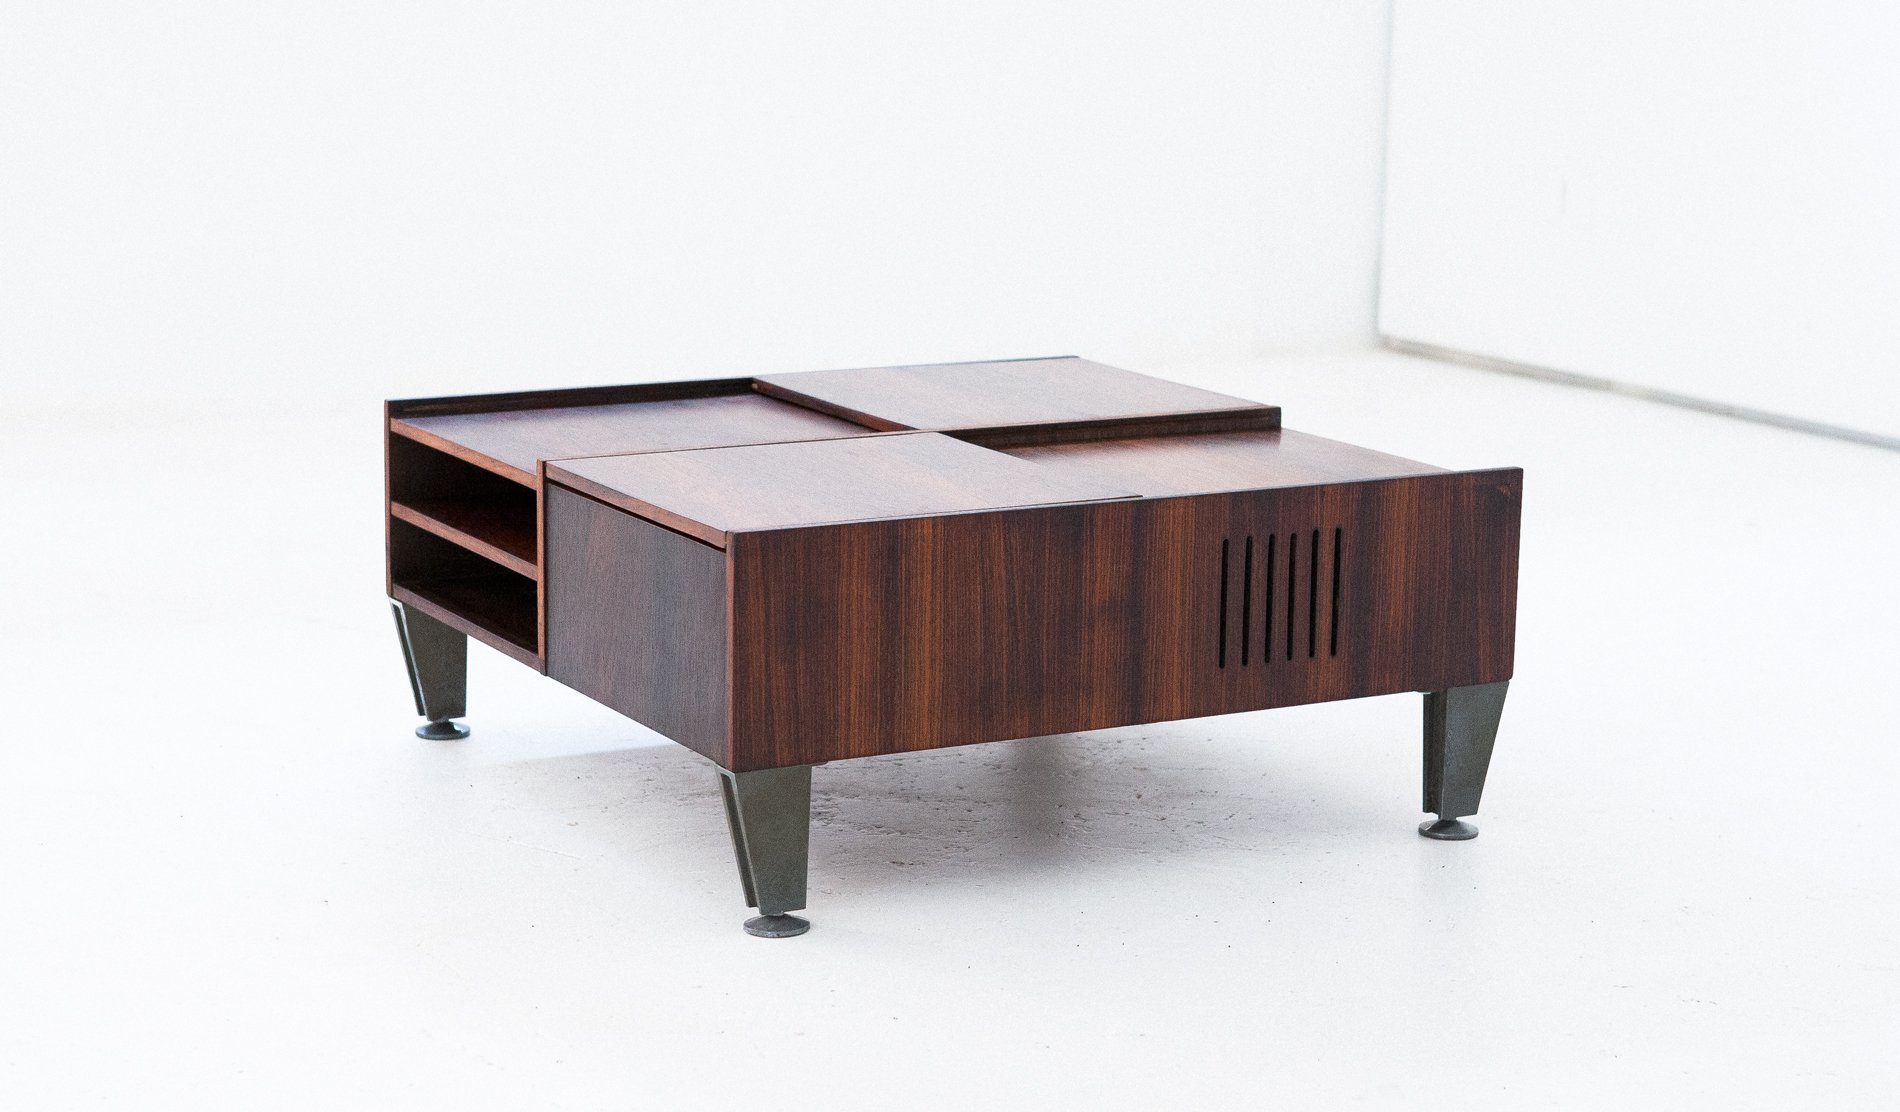 Multifunctional Italian Modern Rosewood Coffee Table 1960s for